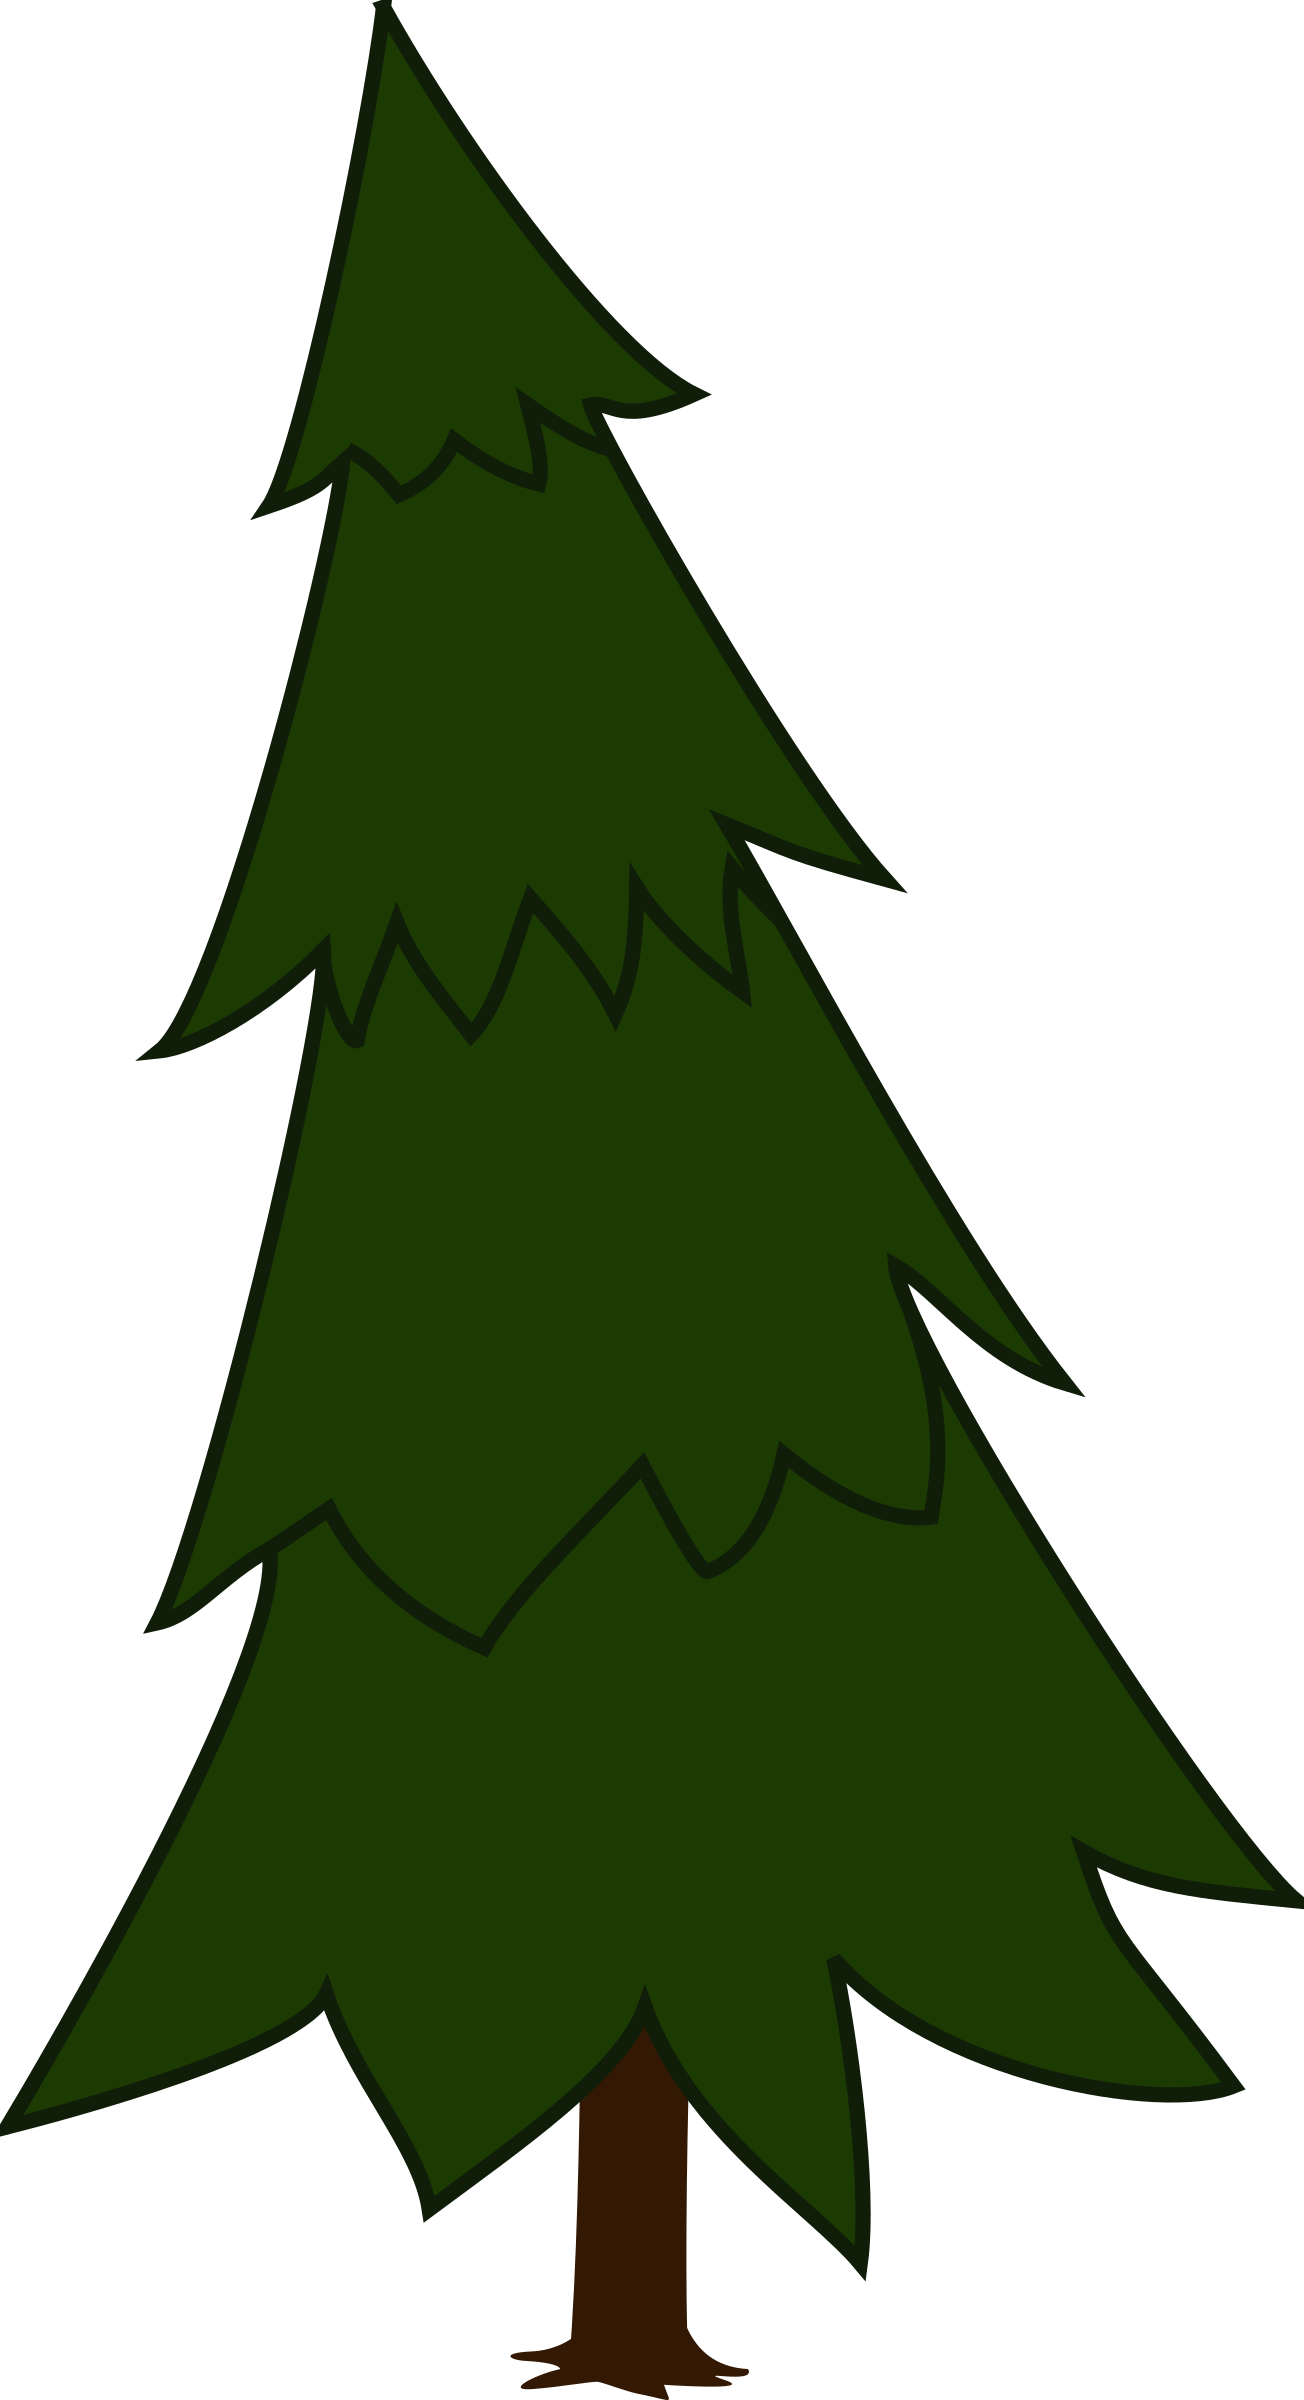 Spruce tree clipart banner freeuse stock Clipart - Spruce banner freeuse stock